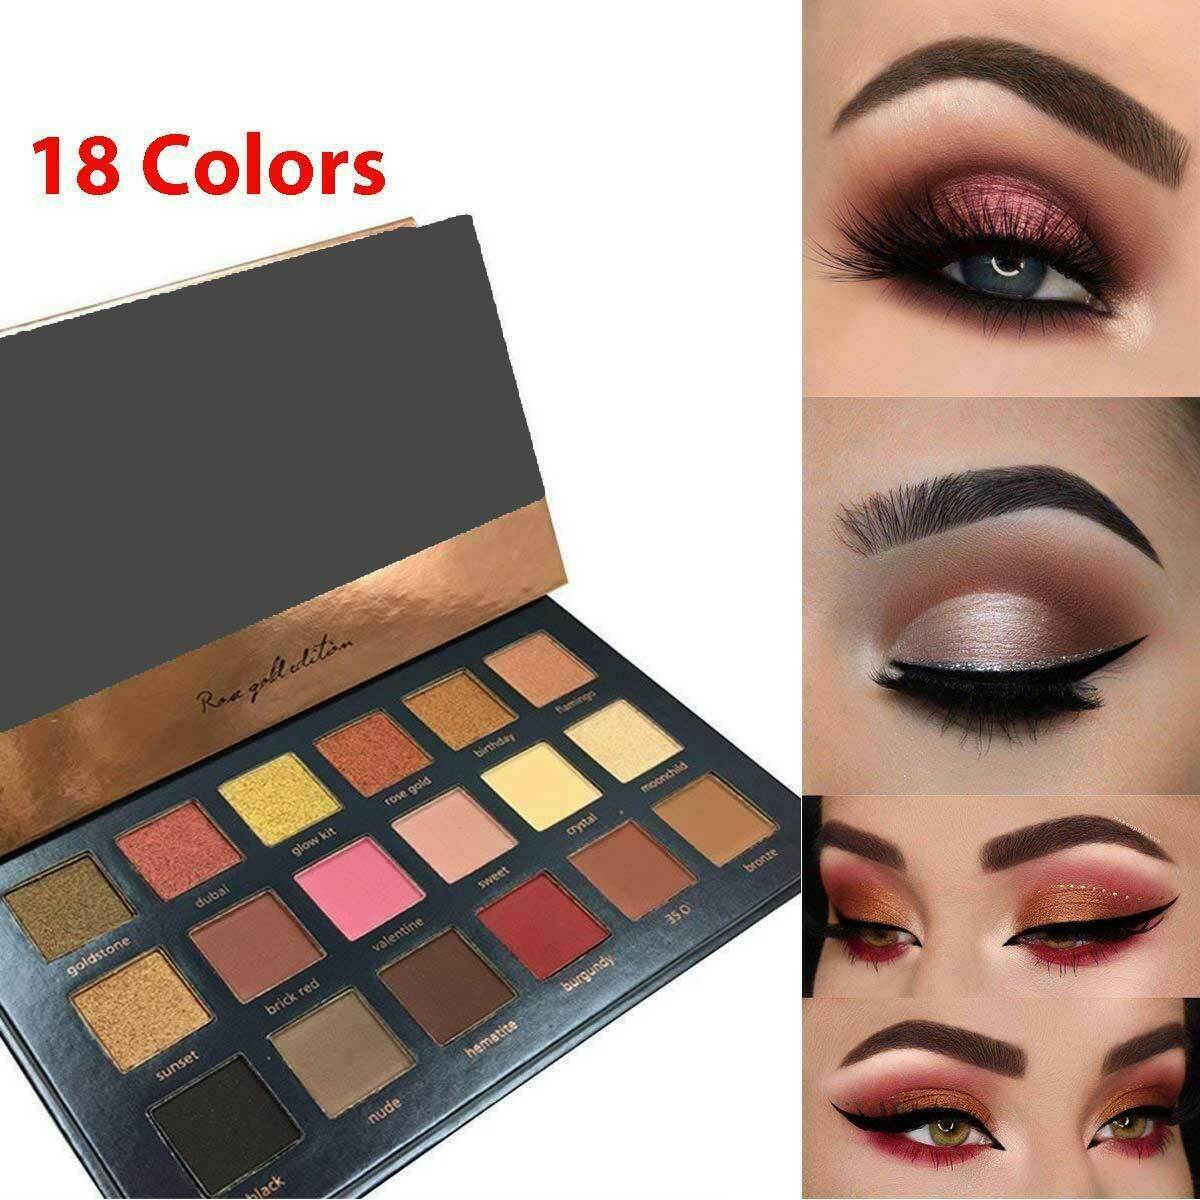 18 Colors Eyeshadow Palette Matte Powder Eye Shadow Makeup Shimmer PRO Kit Set Eye Shadow